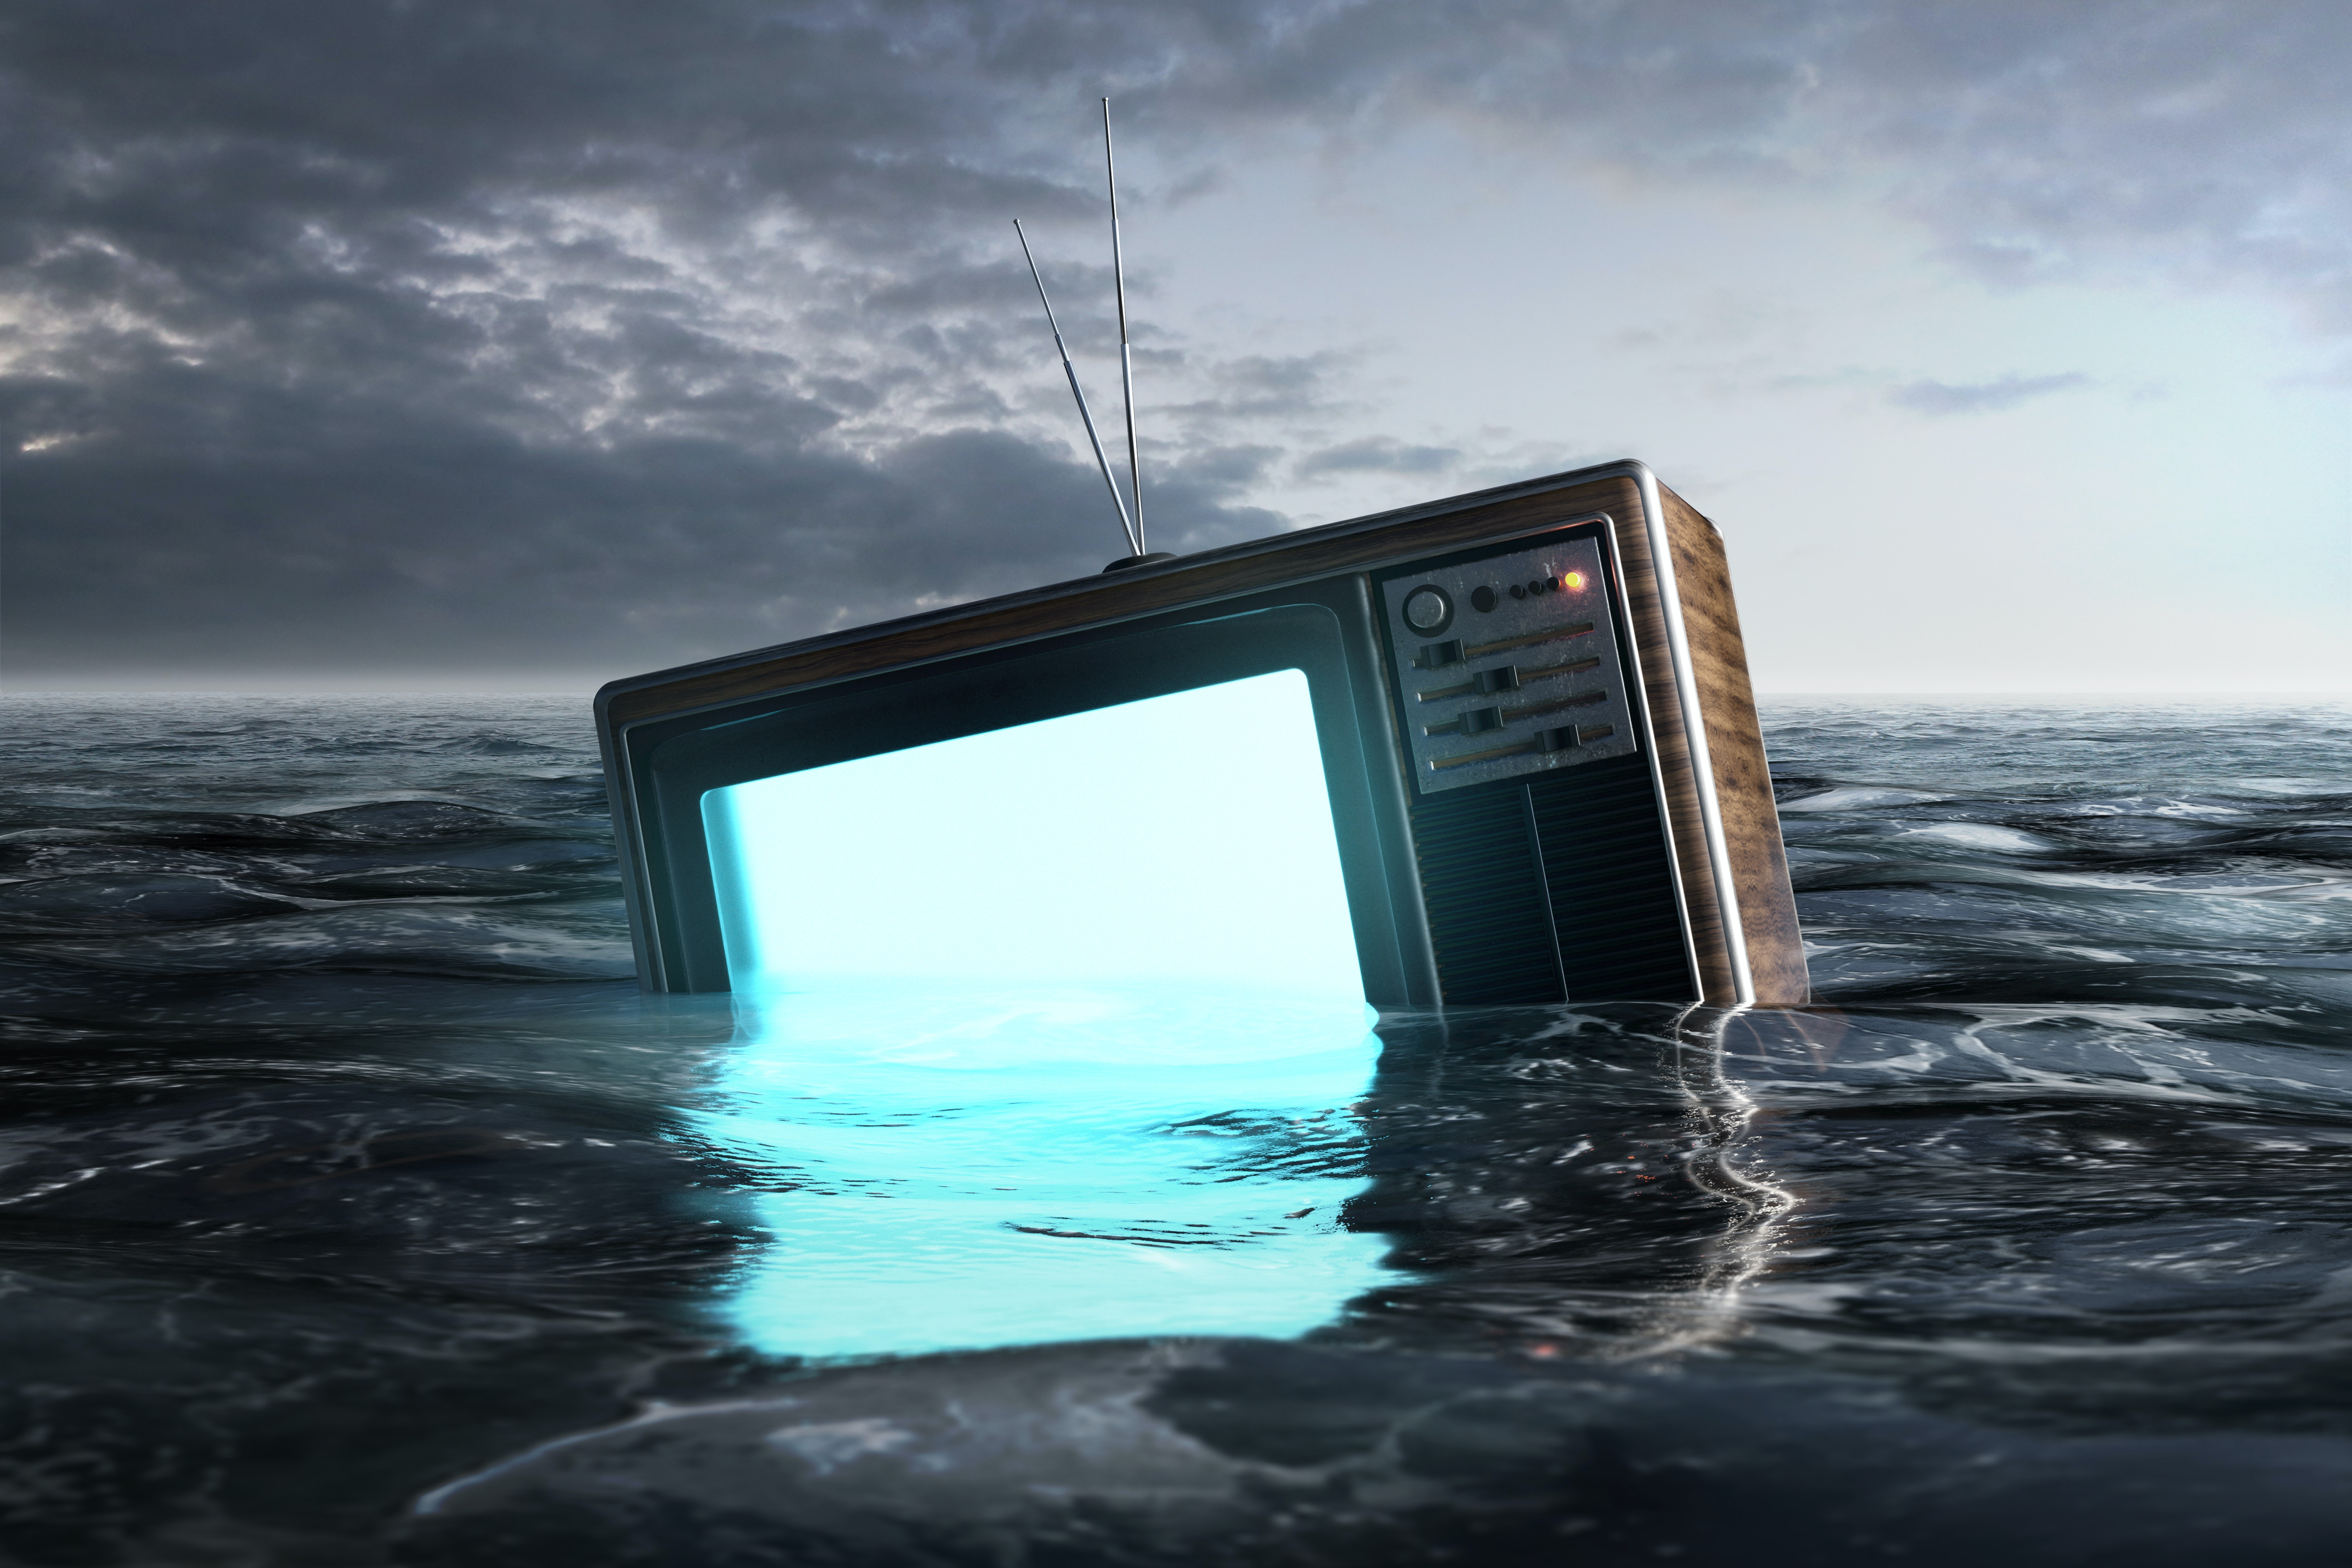 We're drowning in movies and TV shows, and the flood has only begun